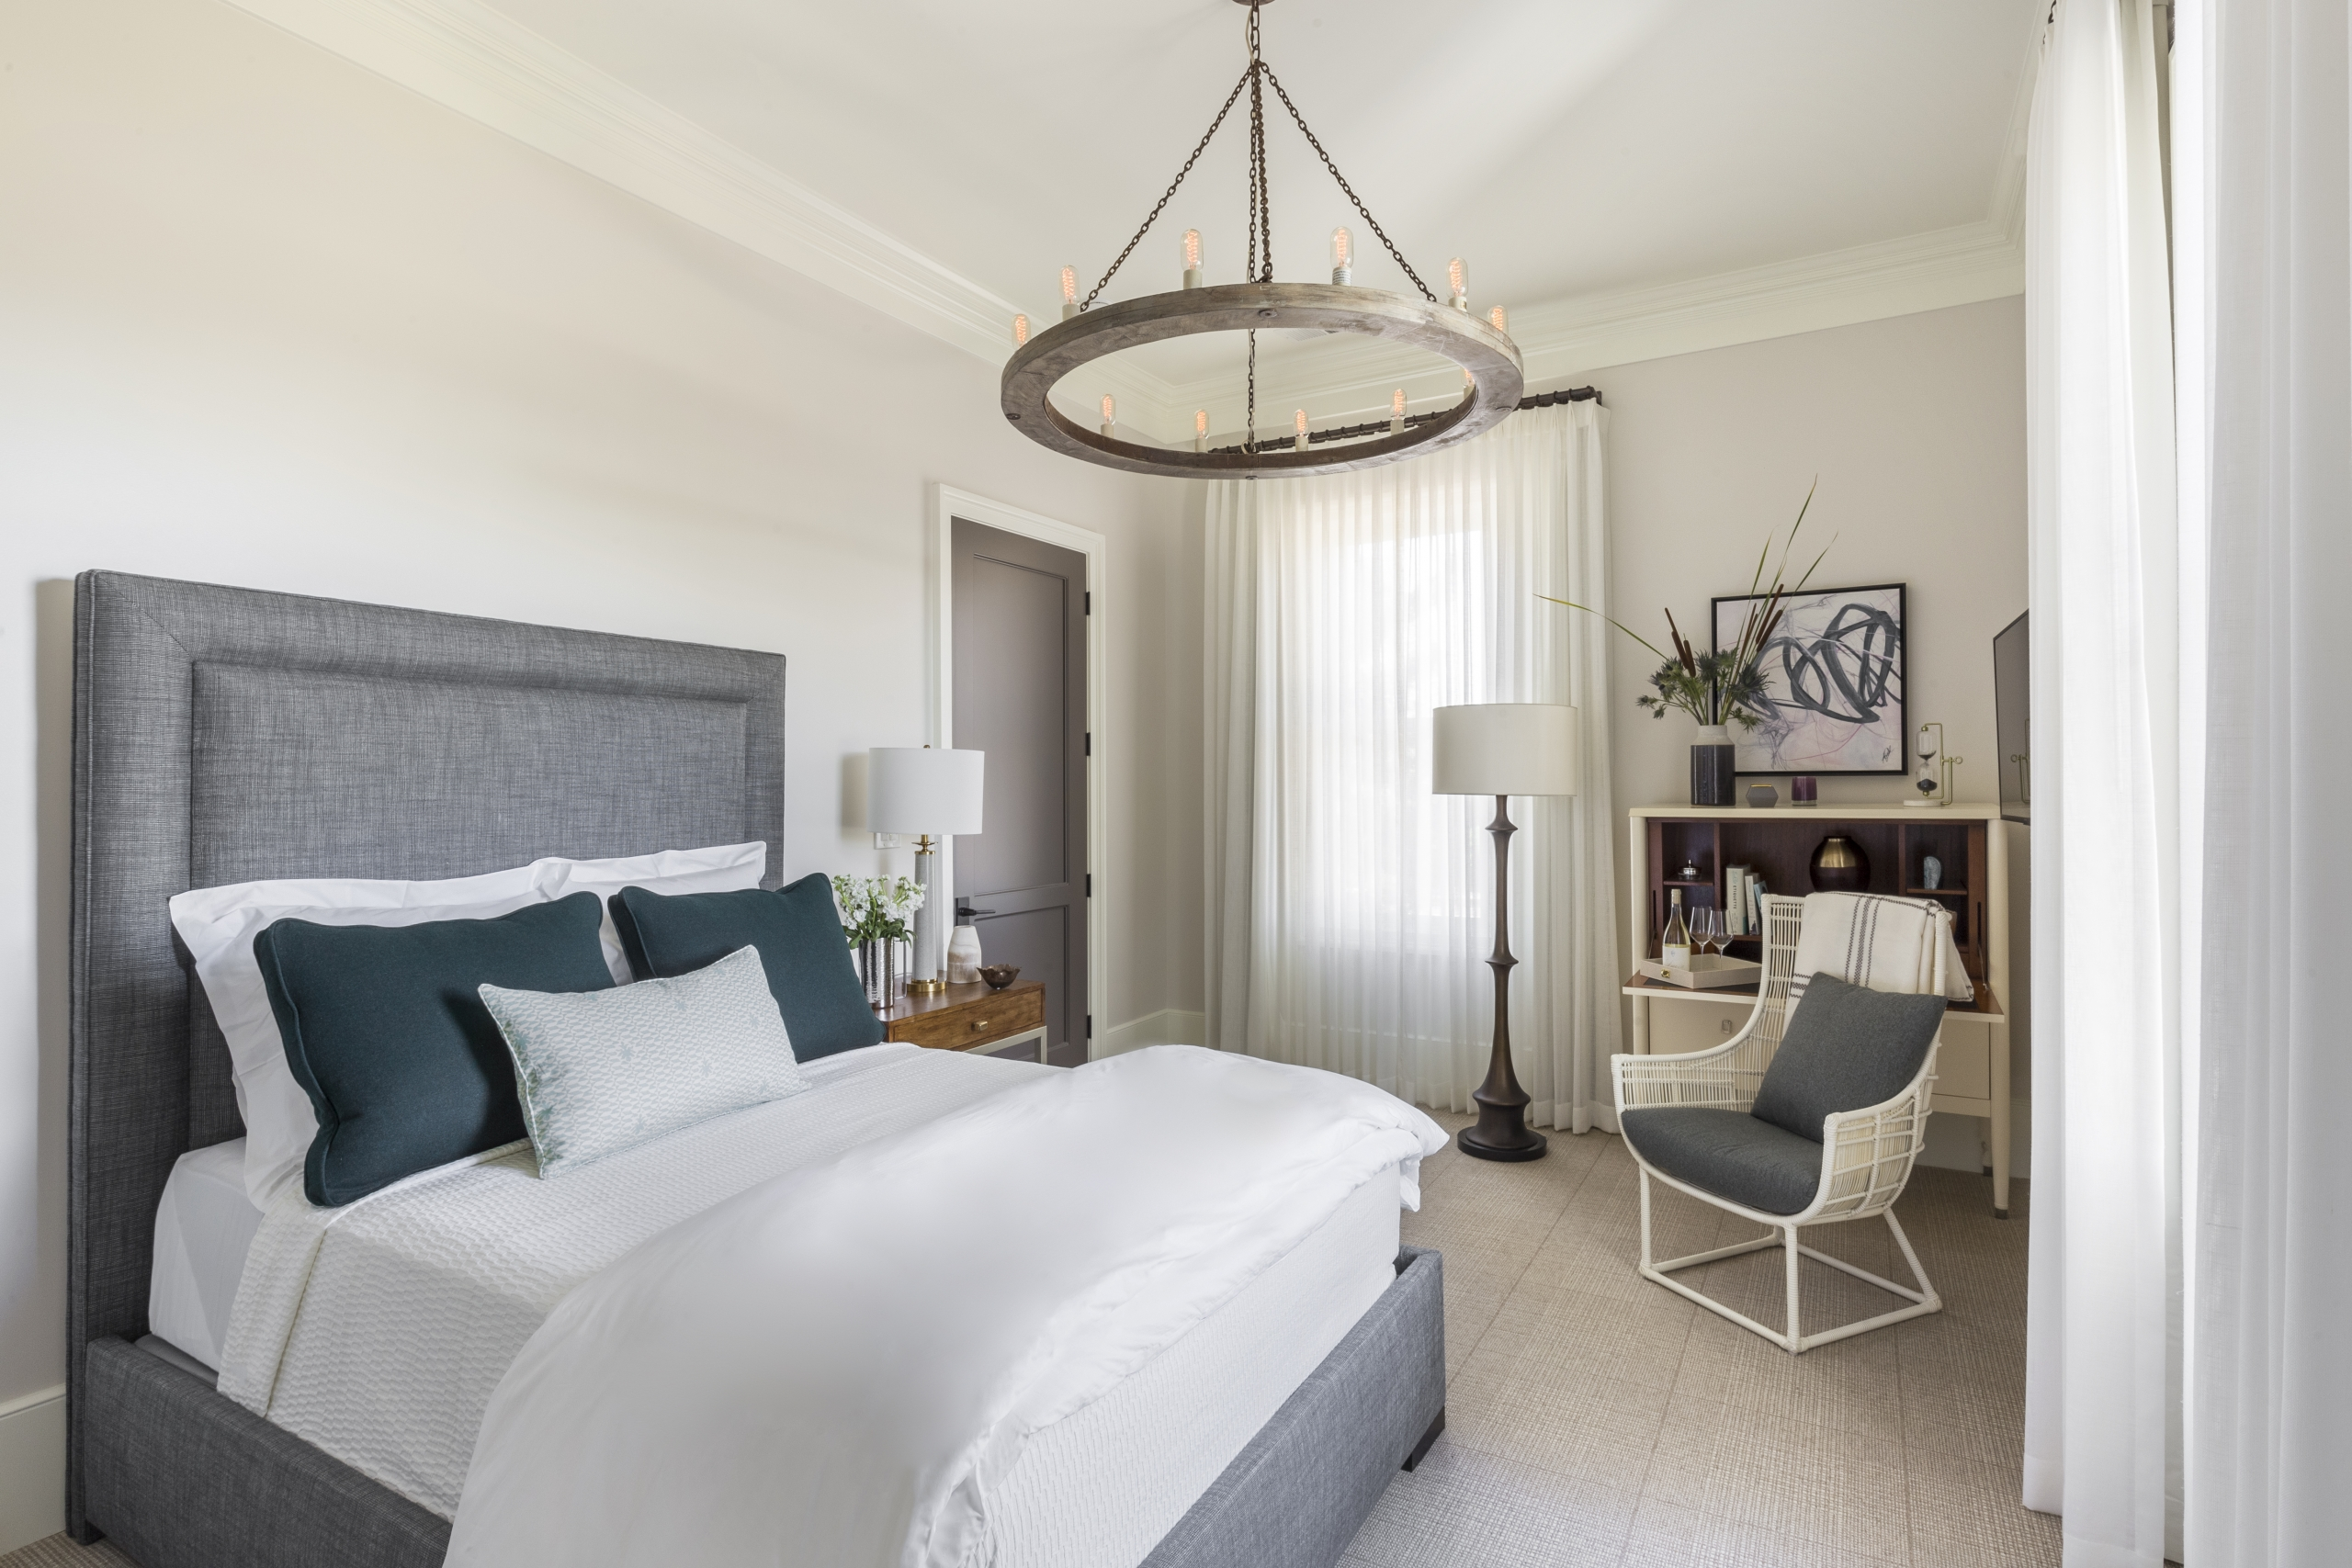 cozy warm neutral and elegant bedroom as seen in Houzz